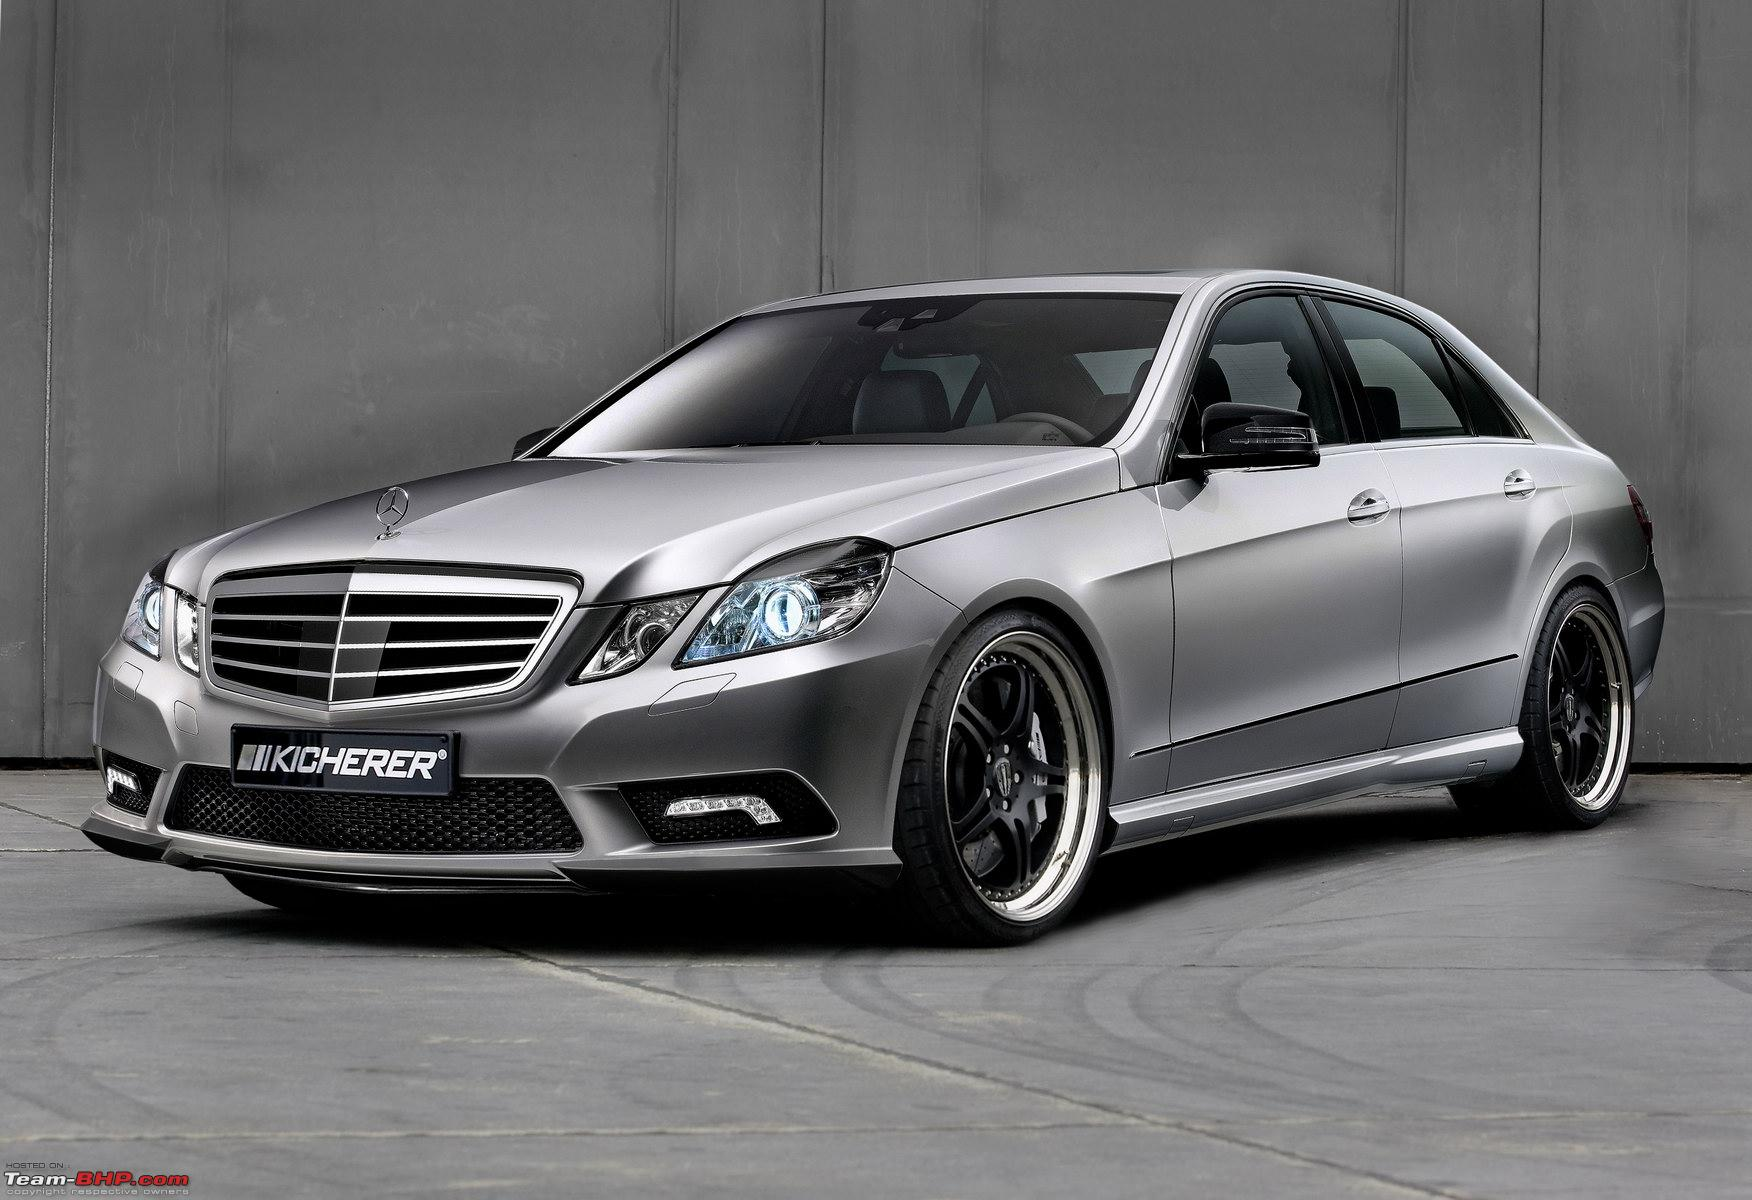 Do you have the AMG styling